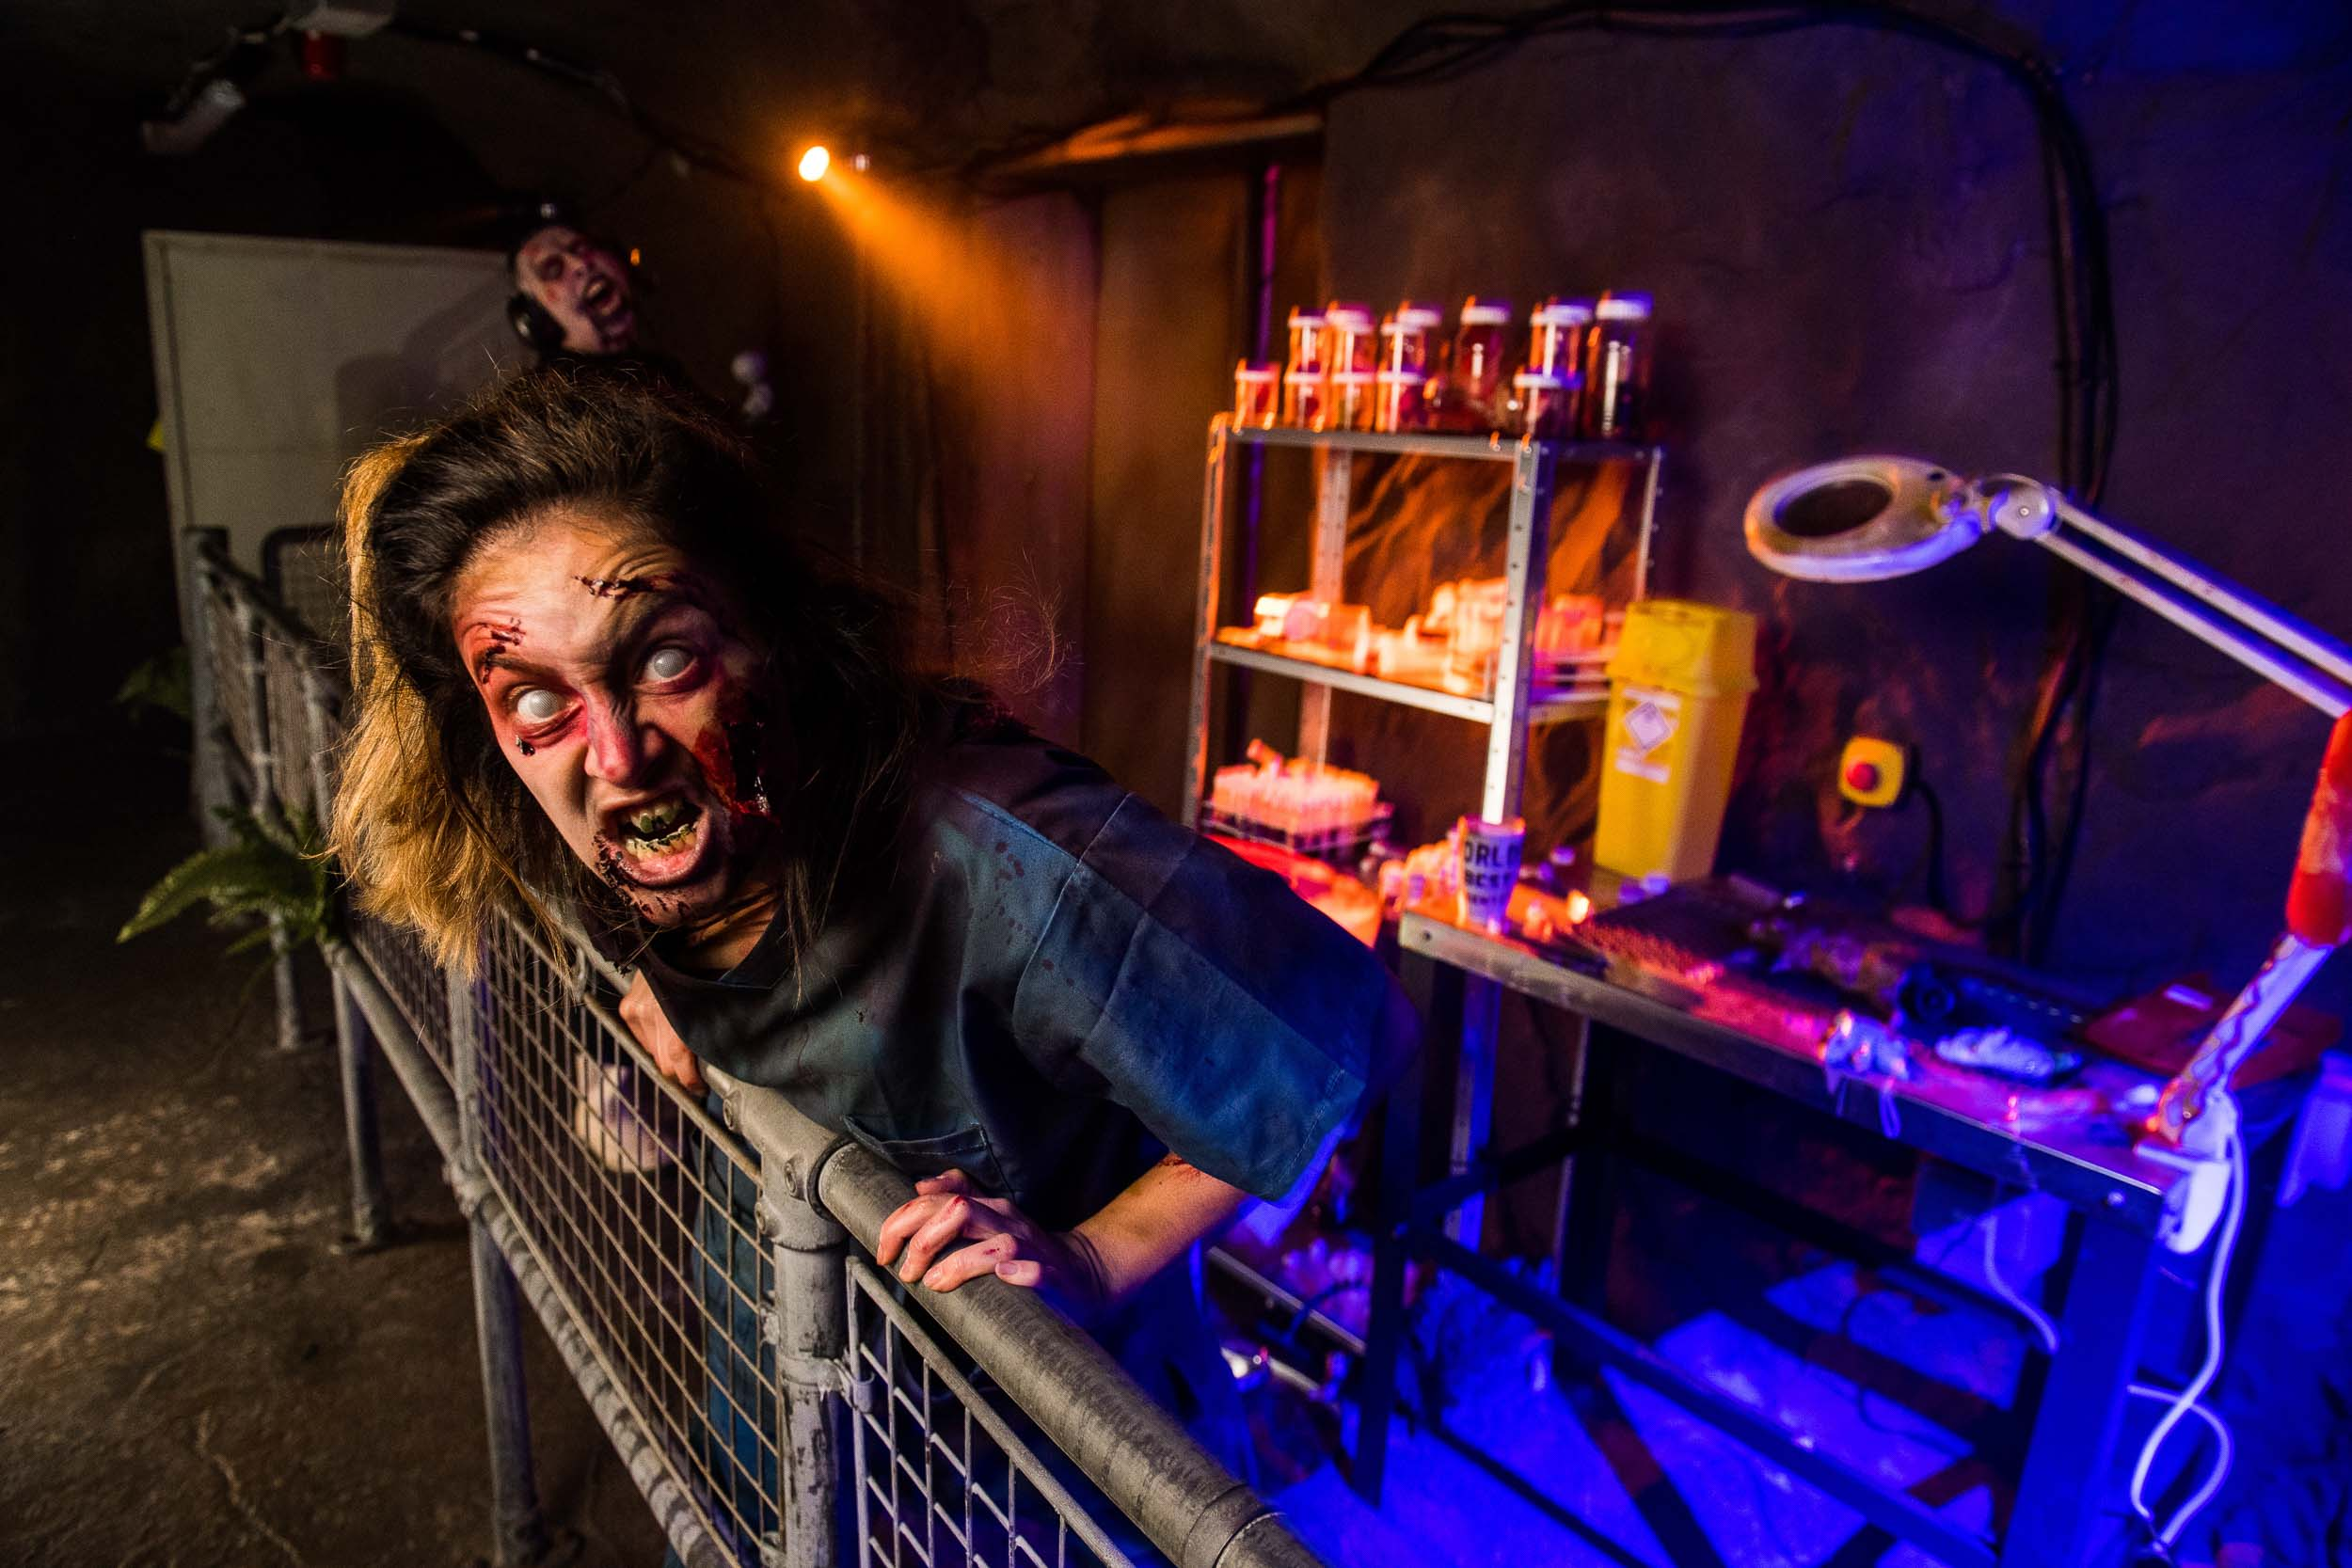 A zombie scares visitors to a theme park in England. Photographs of Scarefest at Alton Towers